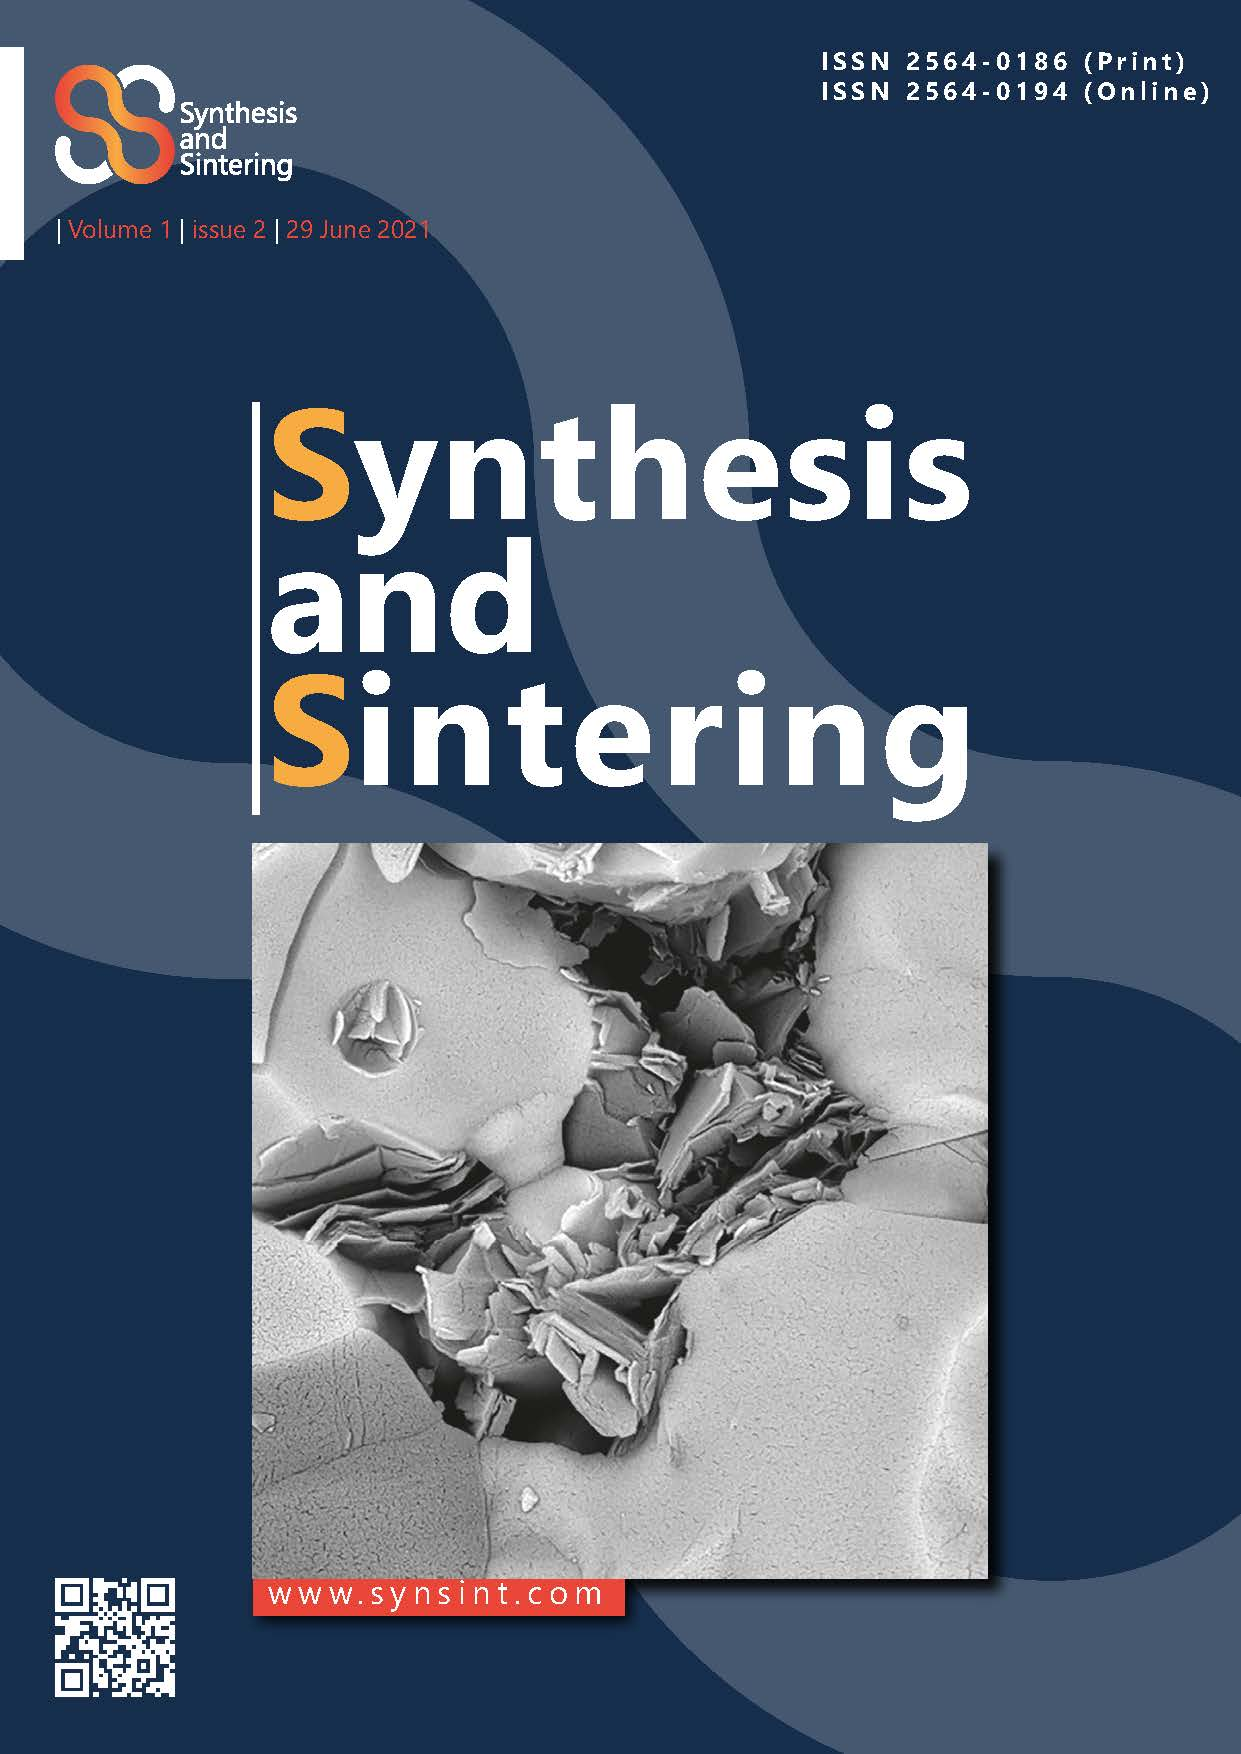 Synthesis and Sintering, Vol. 1, No. 2, 2021